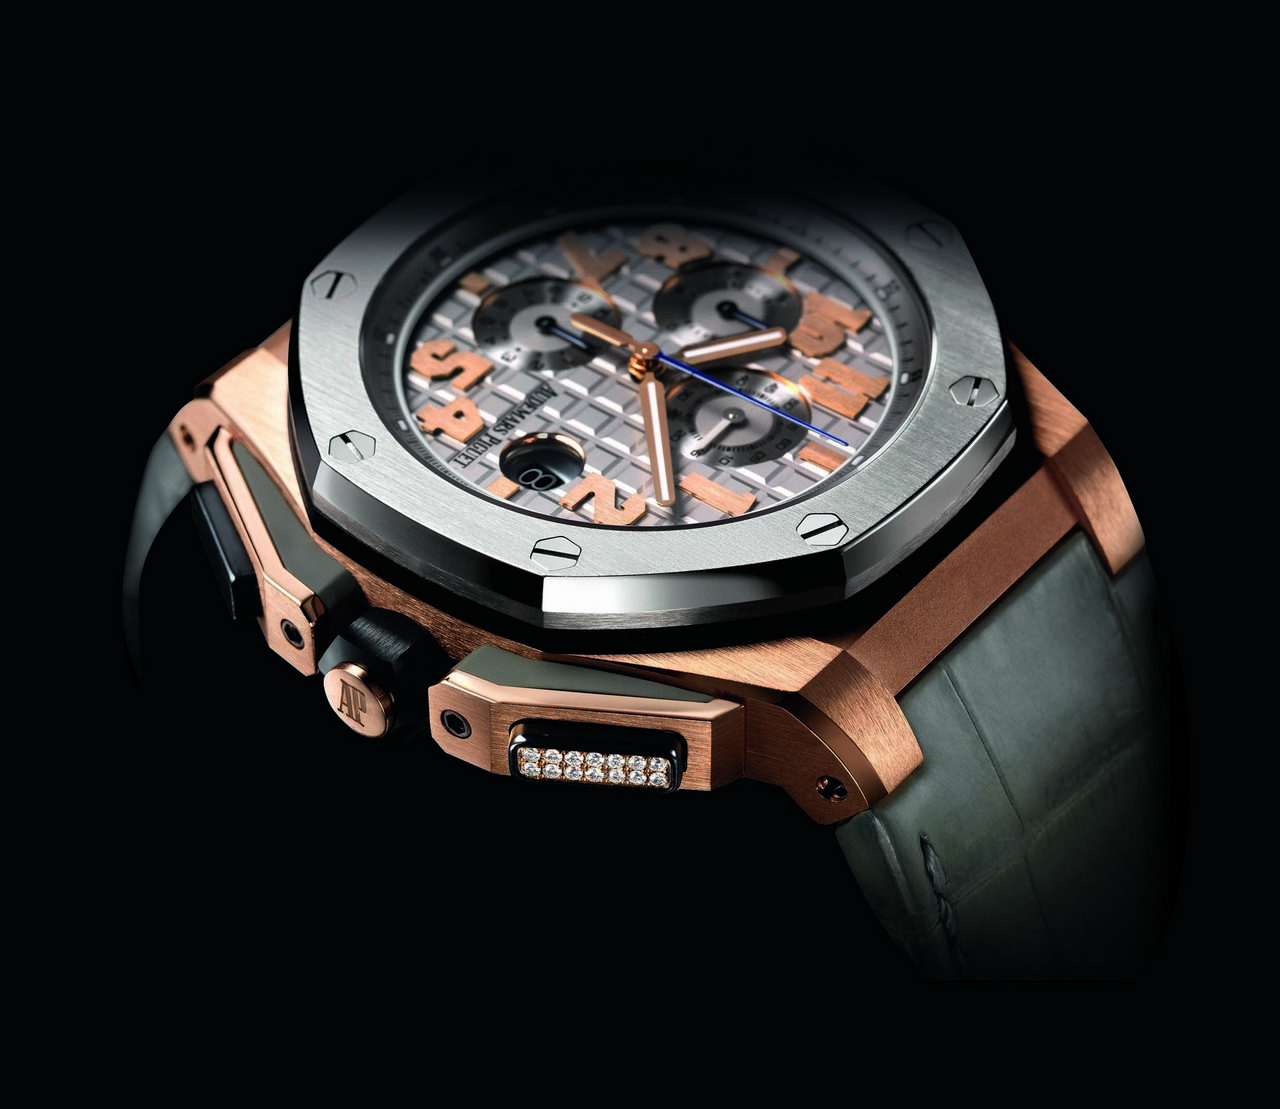 audemars-piguet-royal-oak-offshore-lebron-james-limited-edition_30-100